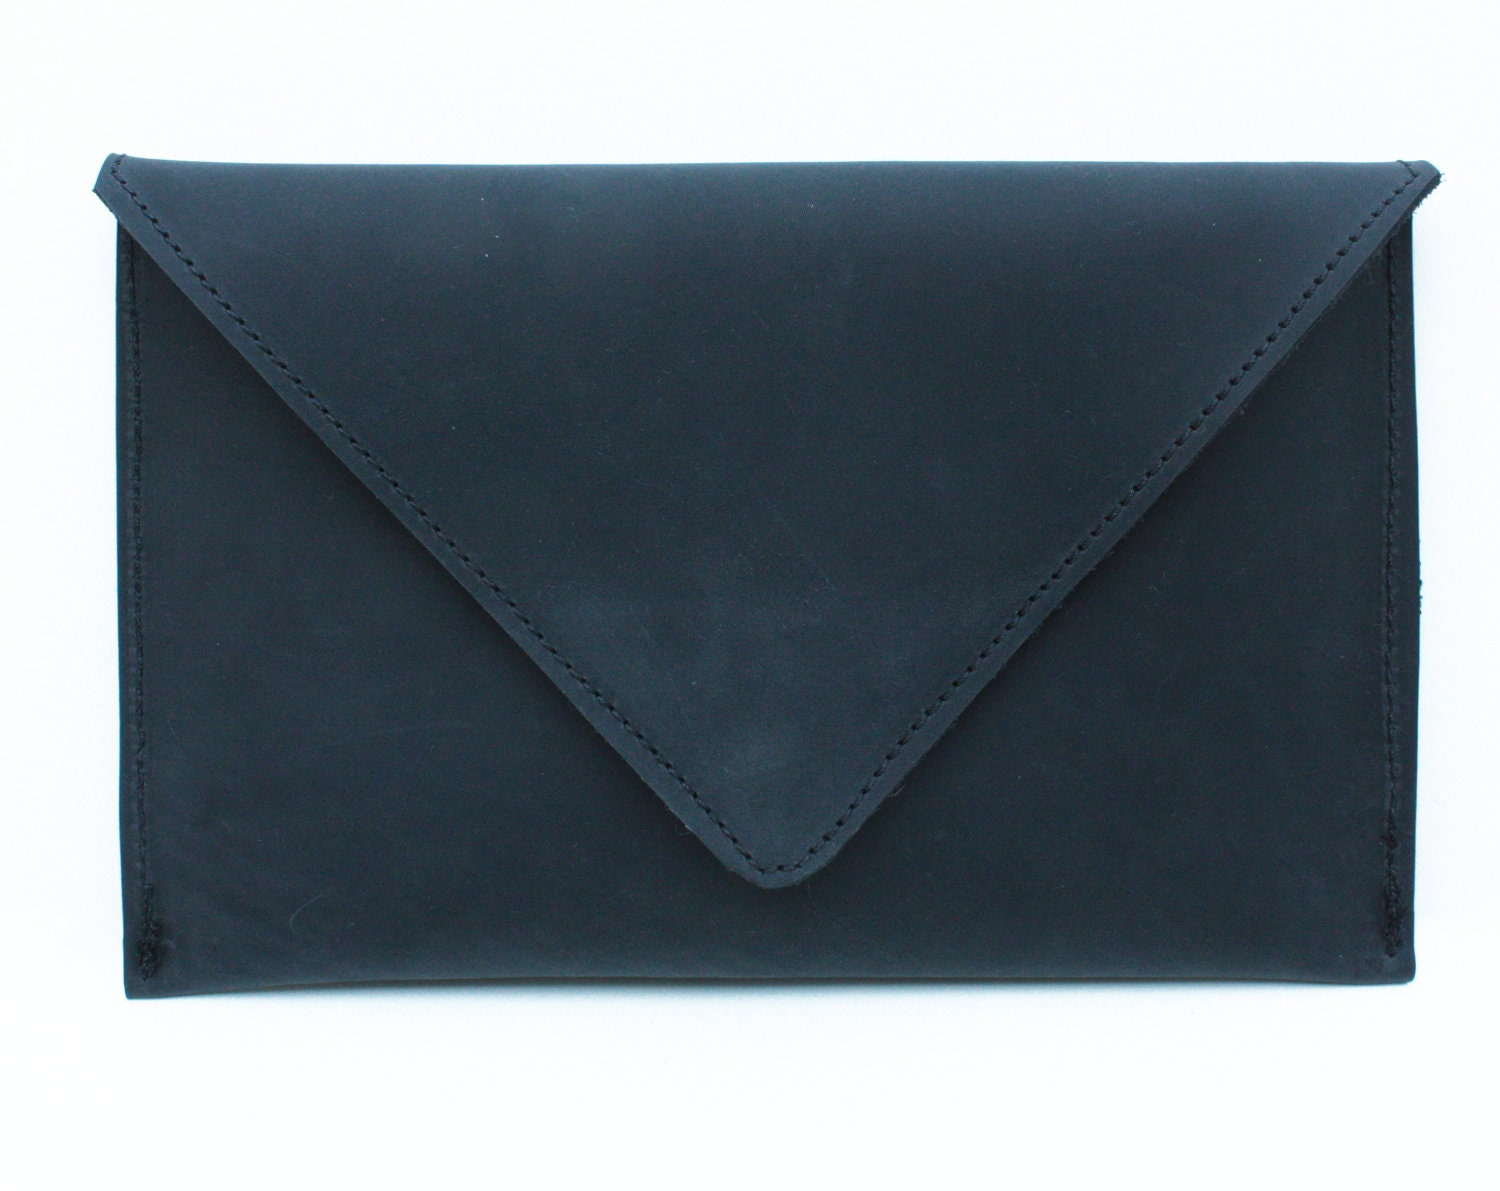 Leather iPad Mini Case, Black Leather iPad Mini Sleeve, Leather Envelope iPad Mini Clutch, Leather Envelope iPad Mini